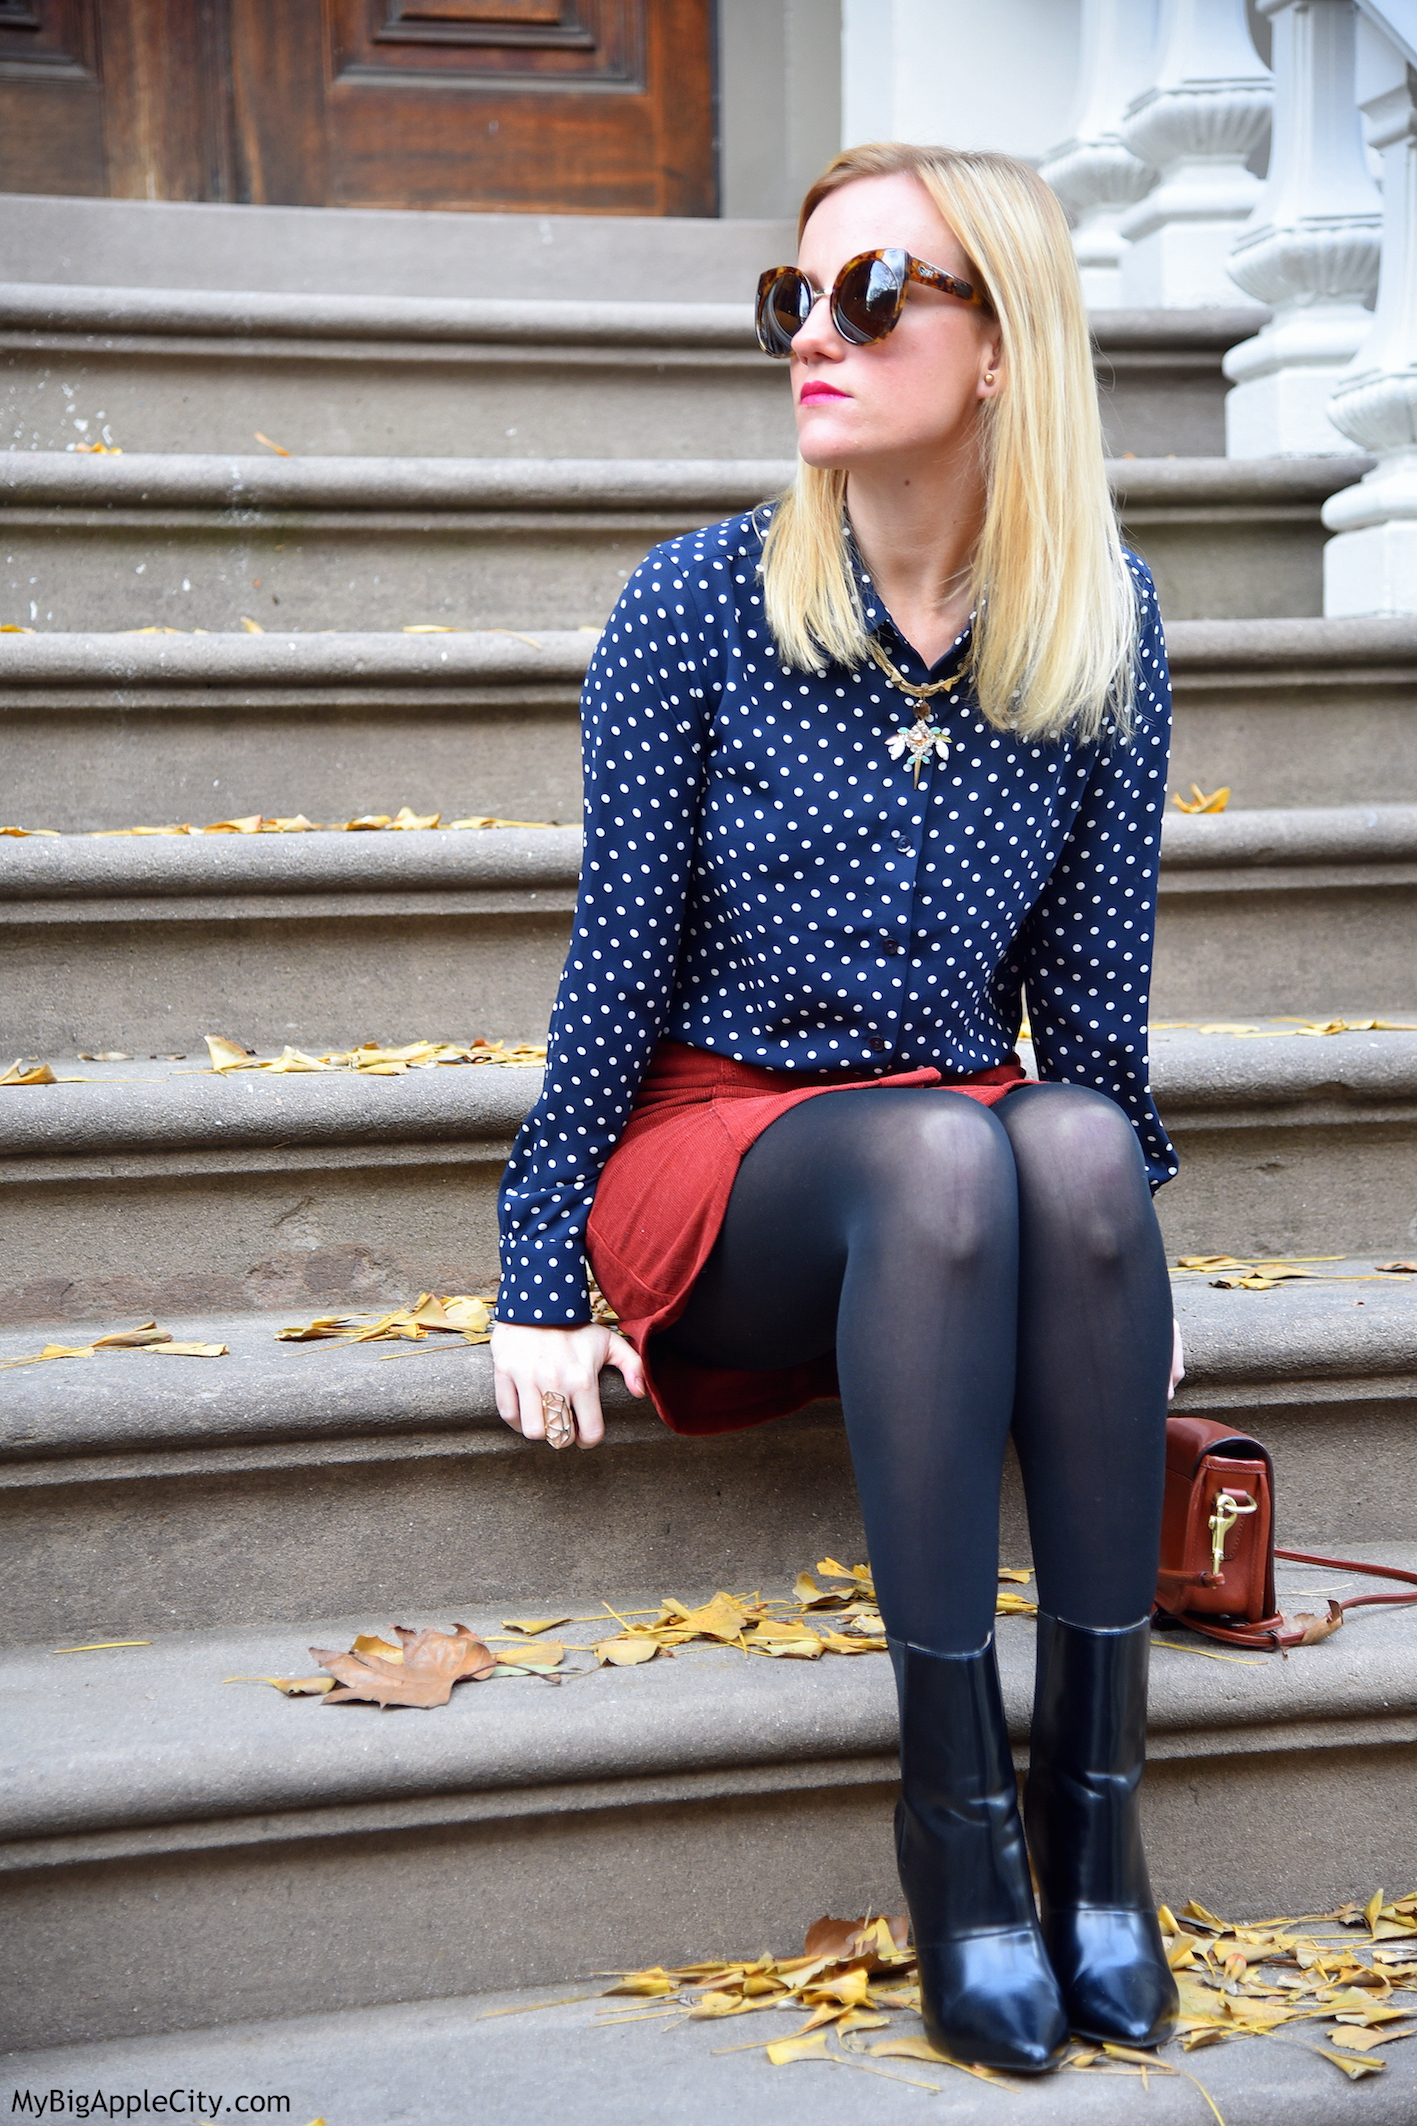 Mode-New-York-blogueuse-OOTD-Lookbook-mybigapplecity